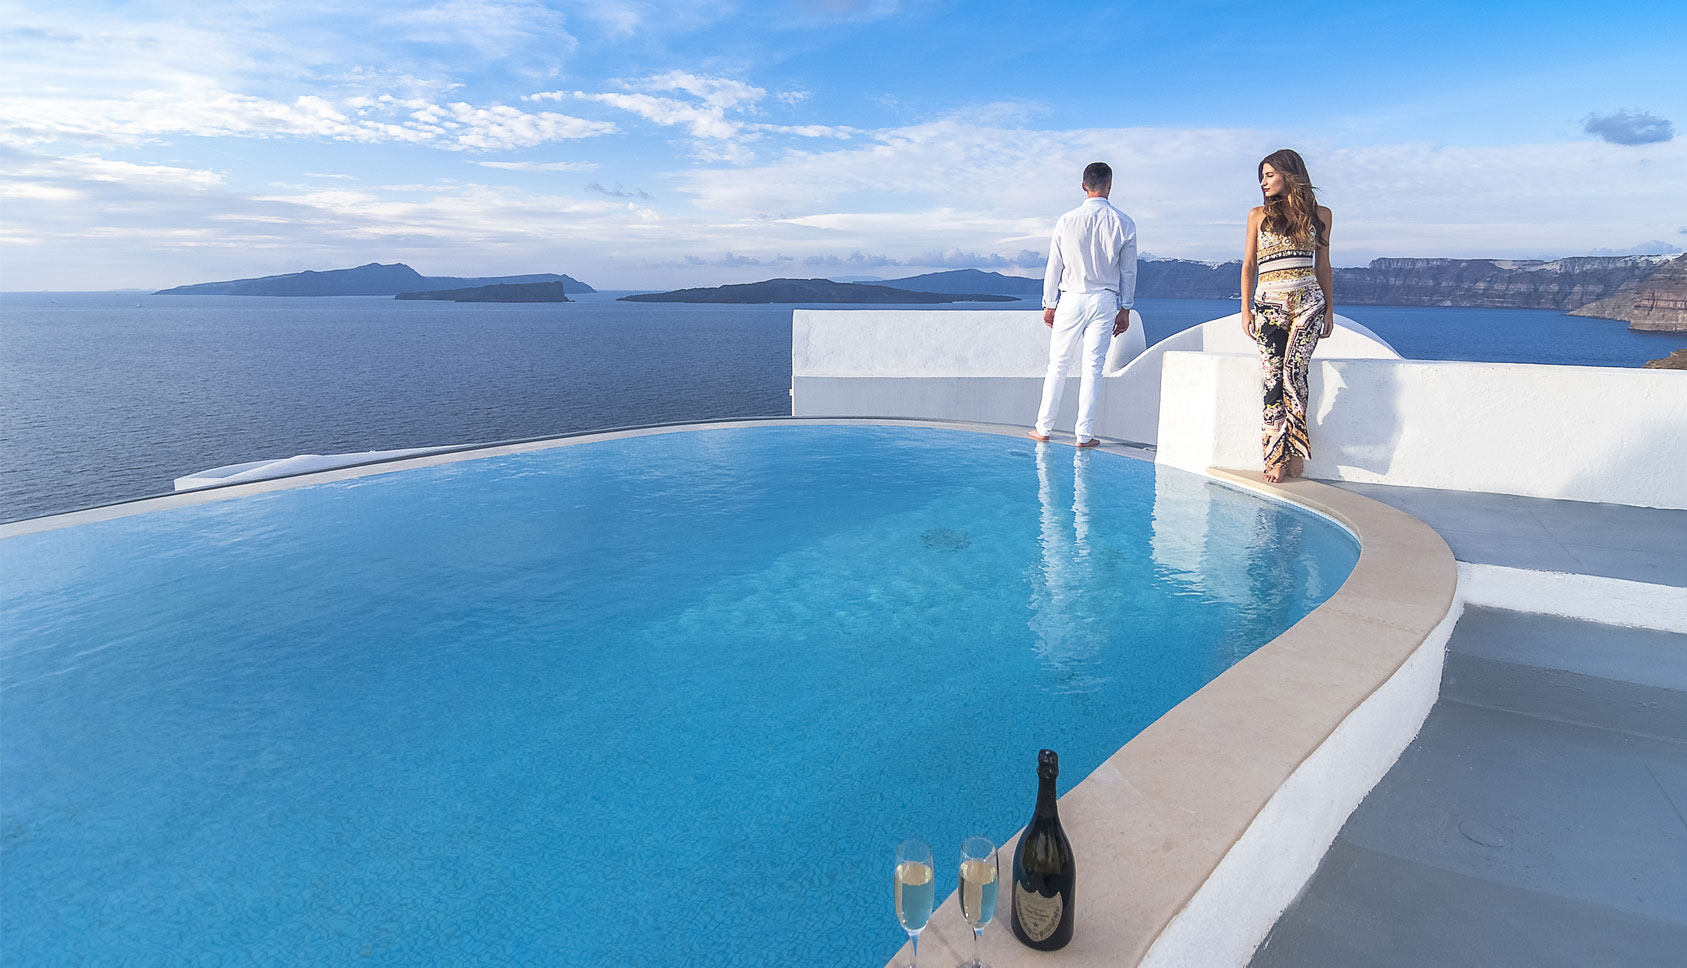 Santorini hotels with private pools 2018 world 39 s best hotels for Hotels in santorini with infinity pools